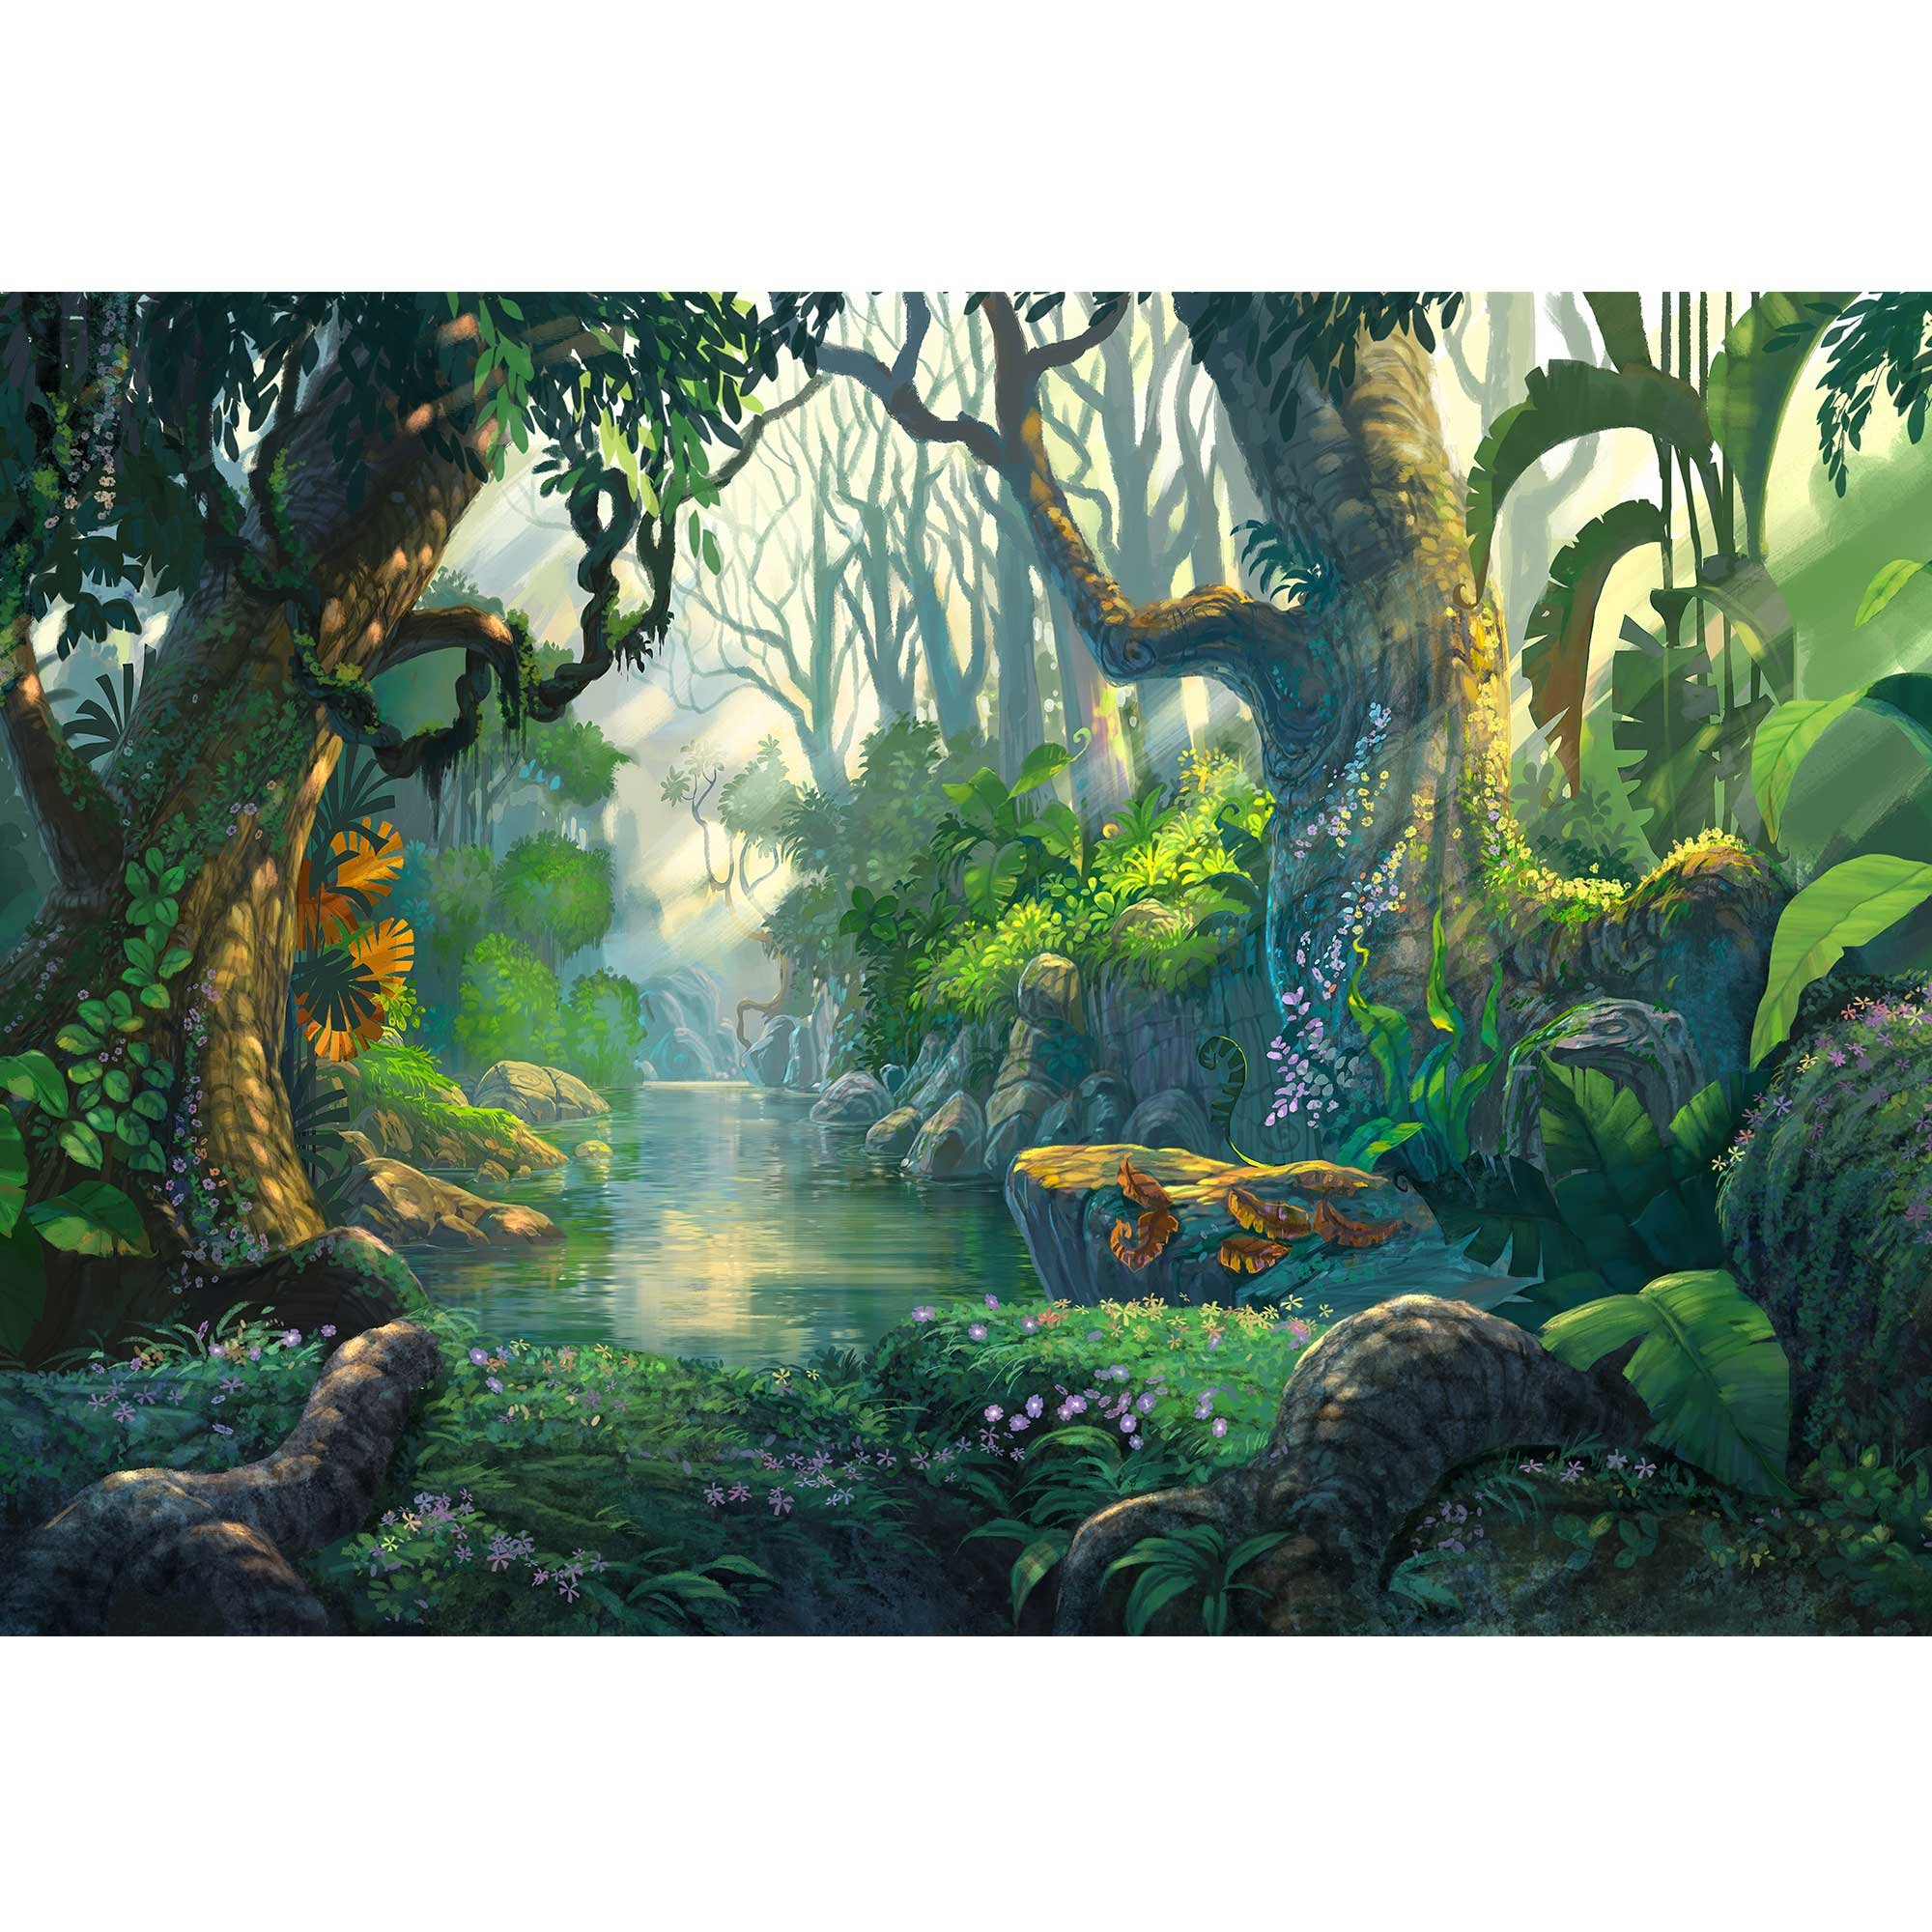 wall26 - Illustration - Fantasy Forest Background Illustration Painting - Removable Wall Mural   Self-Adhesive Large Wallpaper - 100x144 inches by wall26 (Image #2)